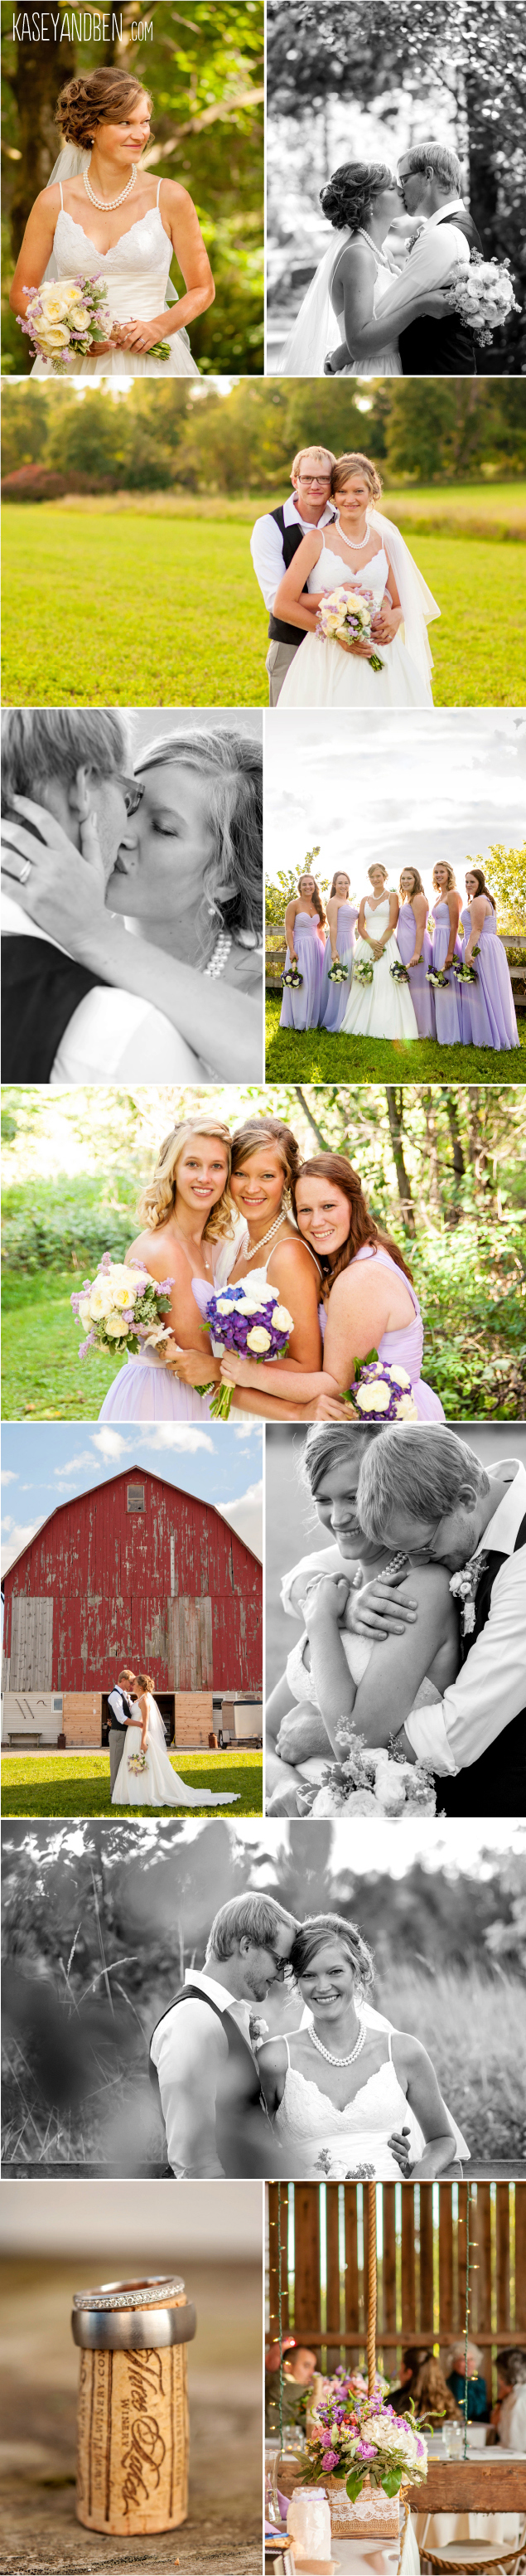 Waukesha_Outdoor_Barn_Wedding_Wisconsin_Vintage_Bed_and_Breakfast_2